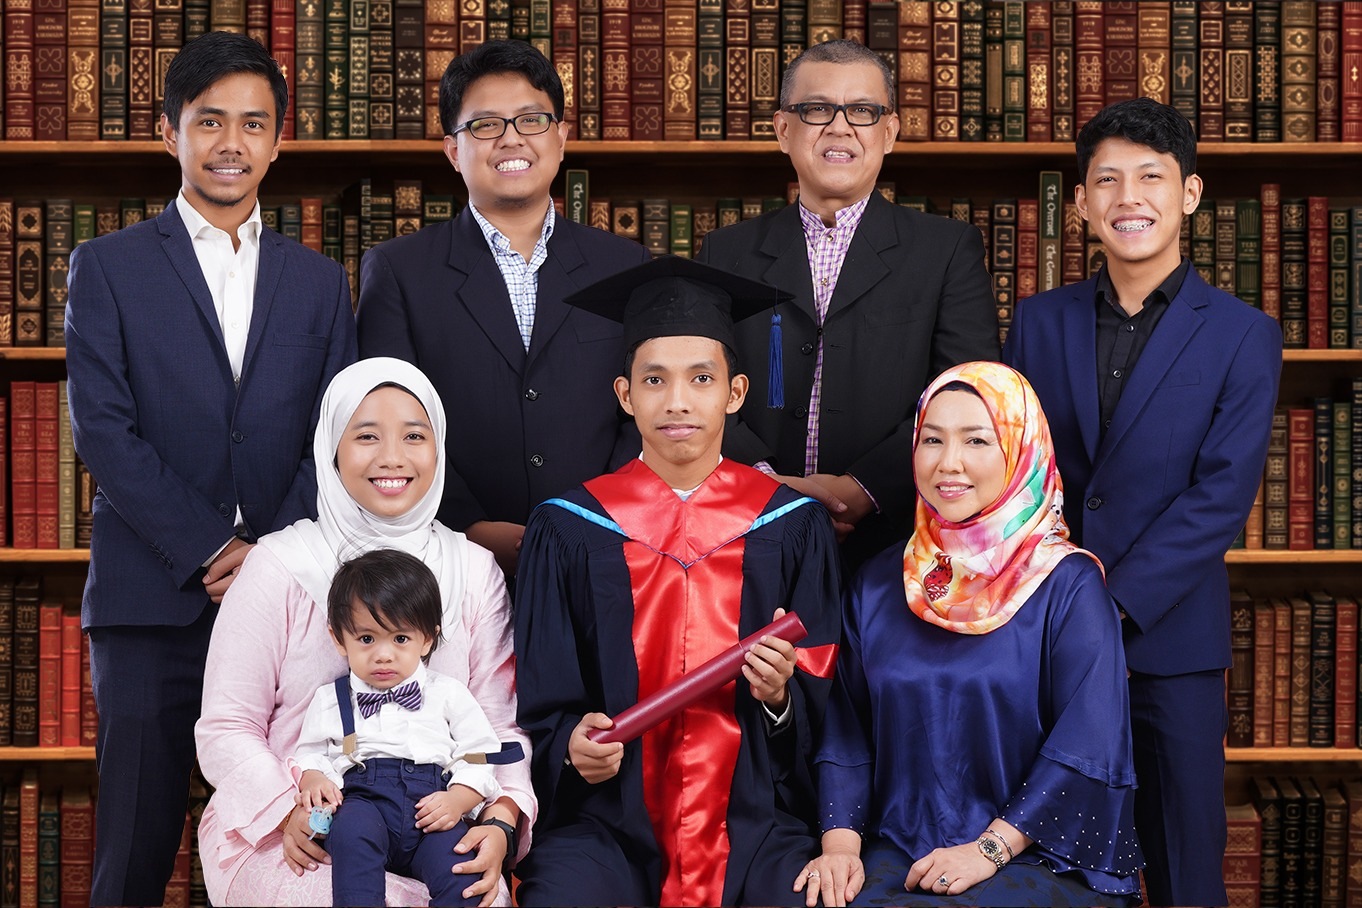 graduation-photo-studio-convocation-unisel-uitm-unikl-usm-uum-msu-segi-taylor-kdu-uia-iium-utm-um-university-konvo-shah-alam-with-classic-library-book-backdrop